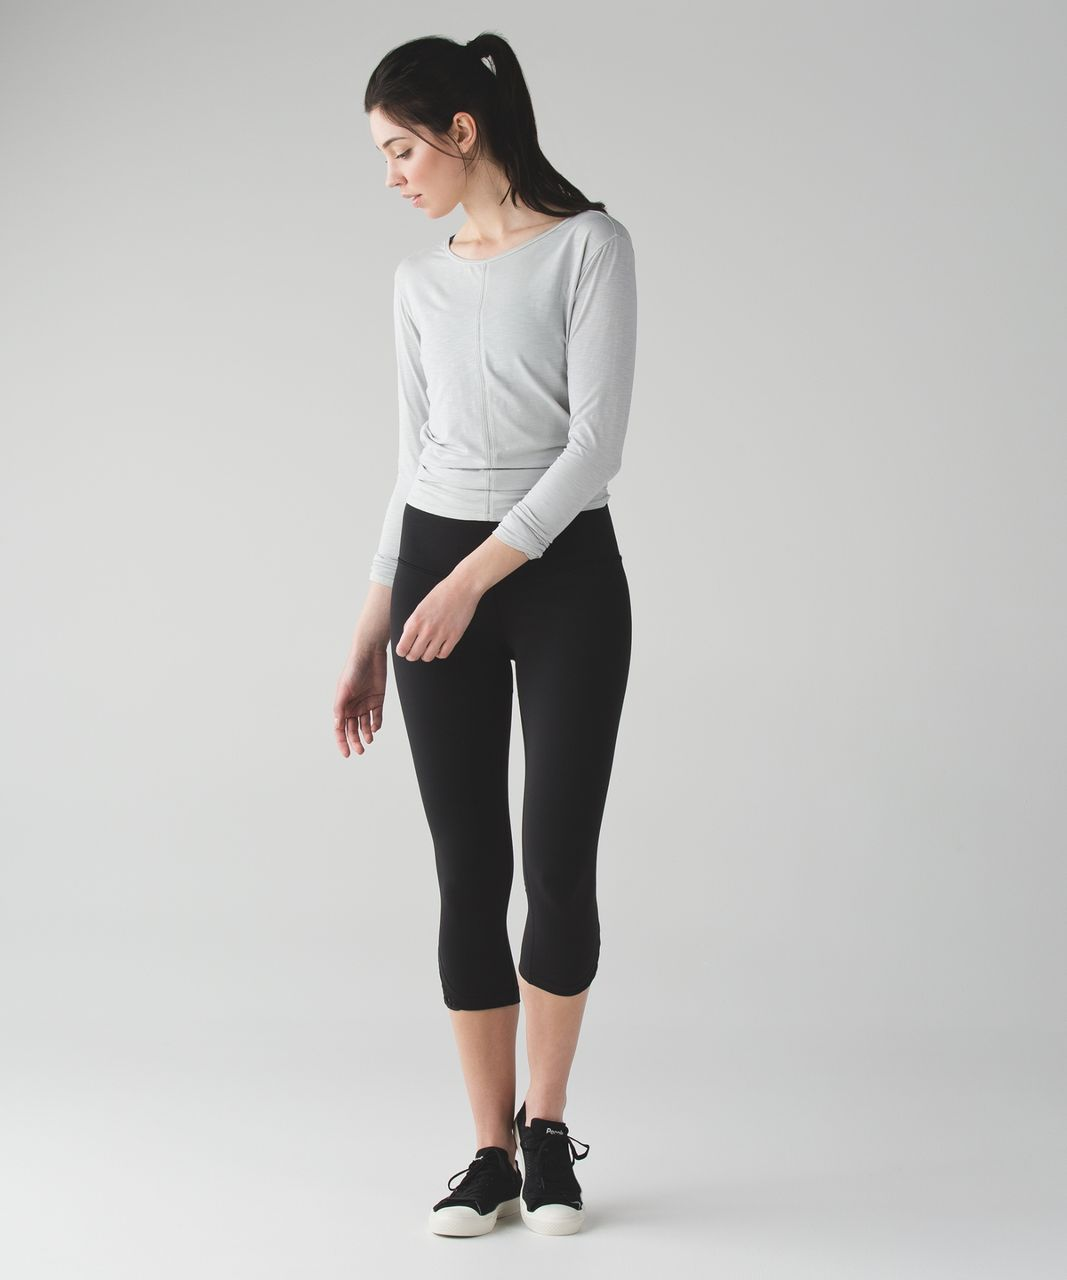 Lululemon True Self Crop II - Black